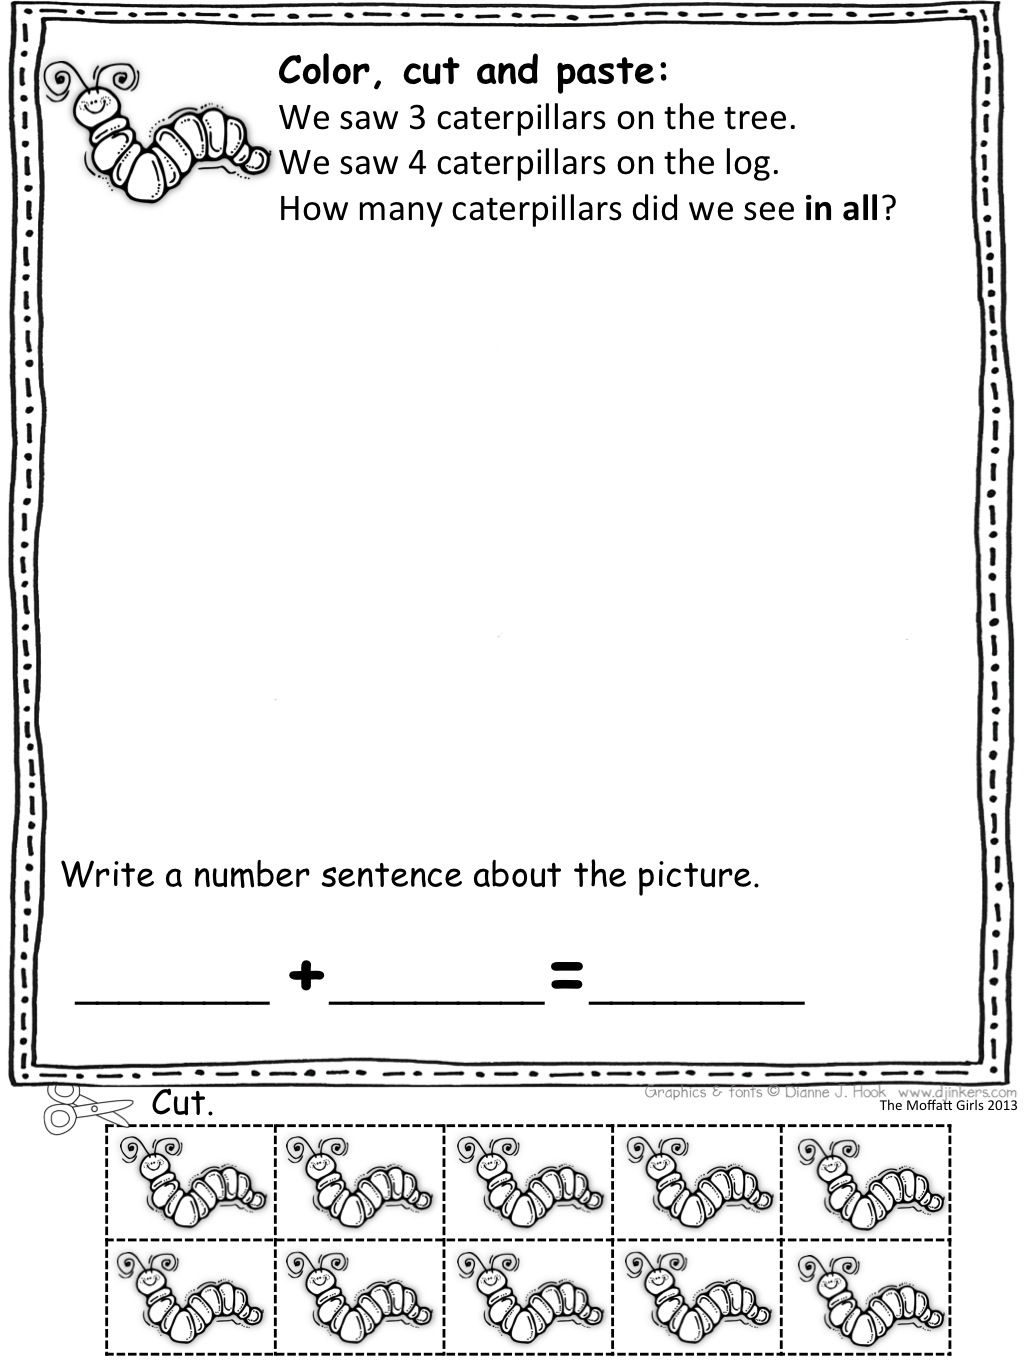 Color Cut And Paste Spring Math Word Problems With Built In Manipulatives Such A Fun Way To